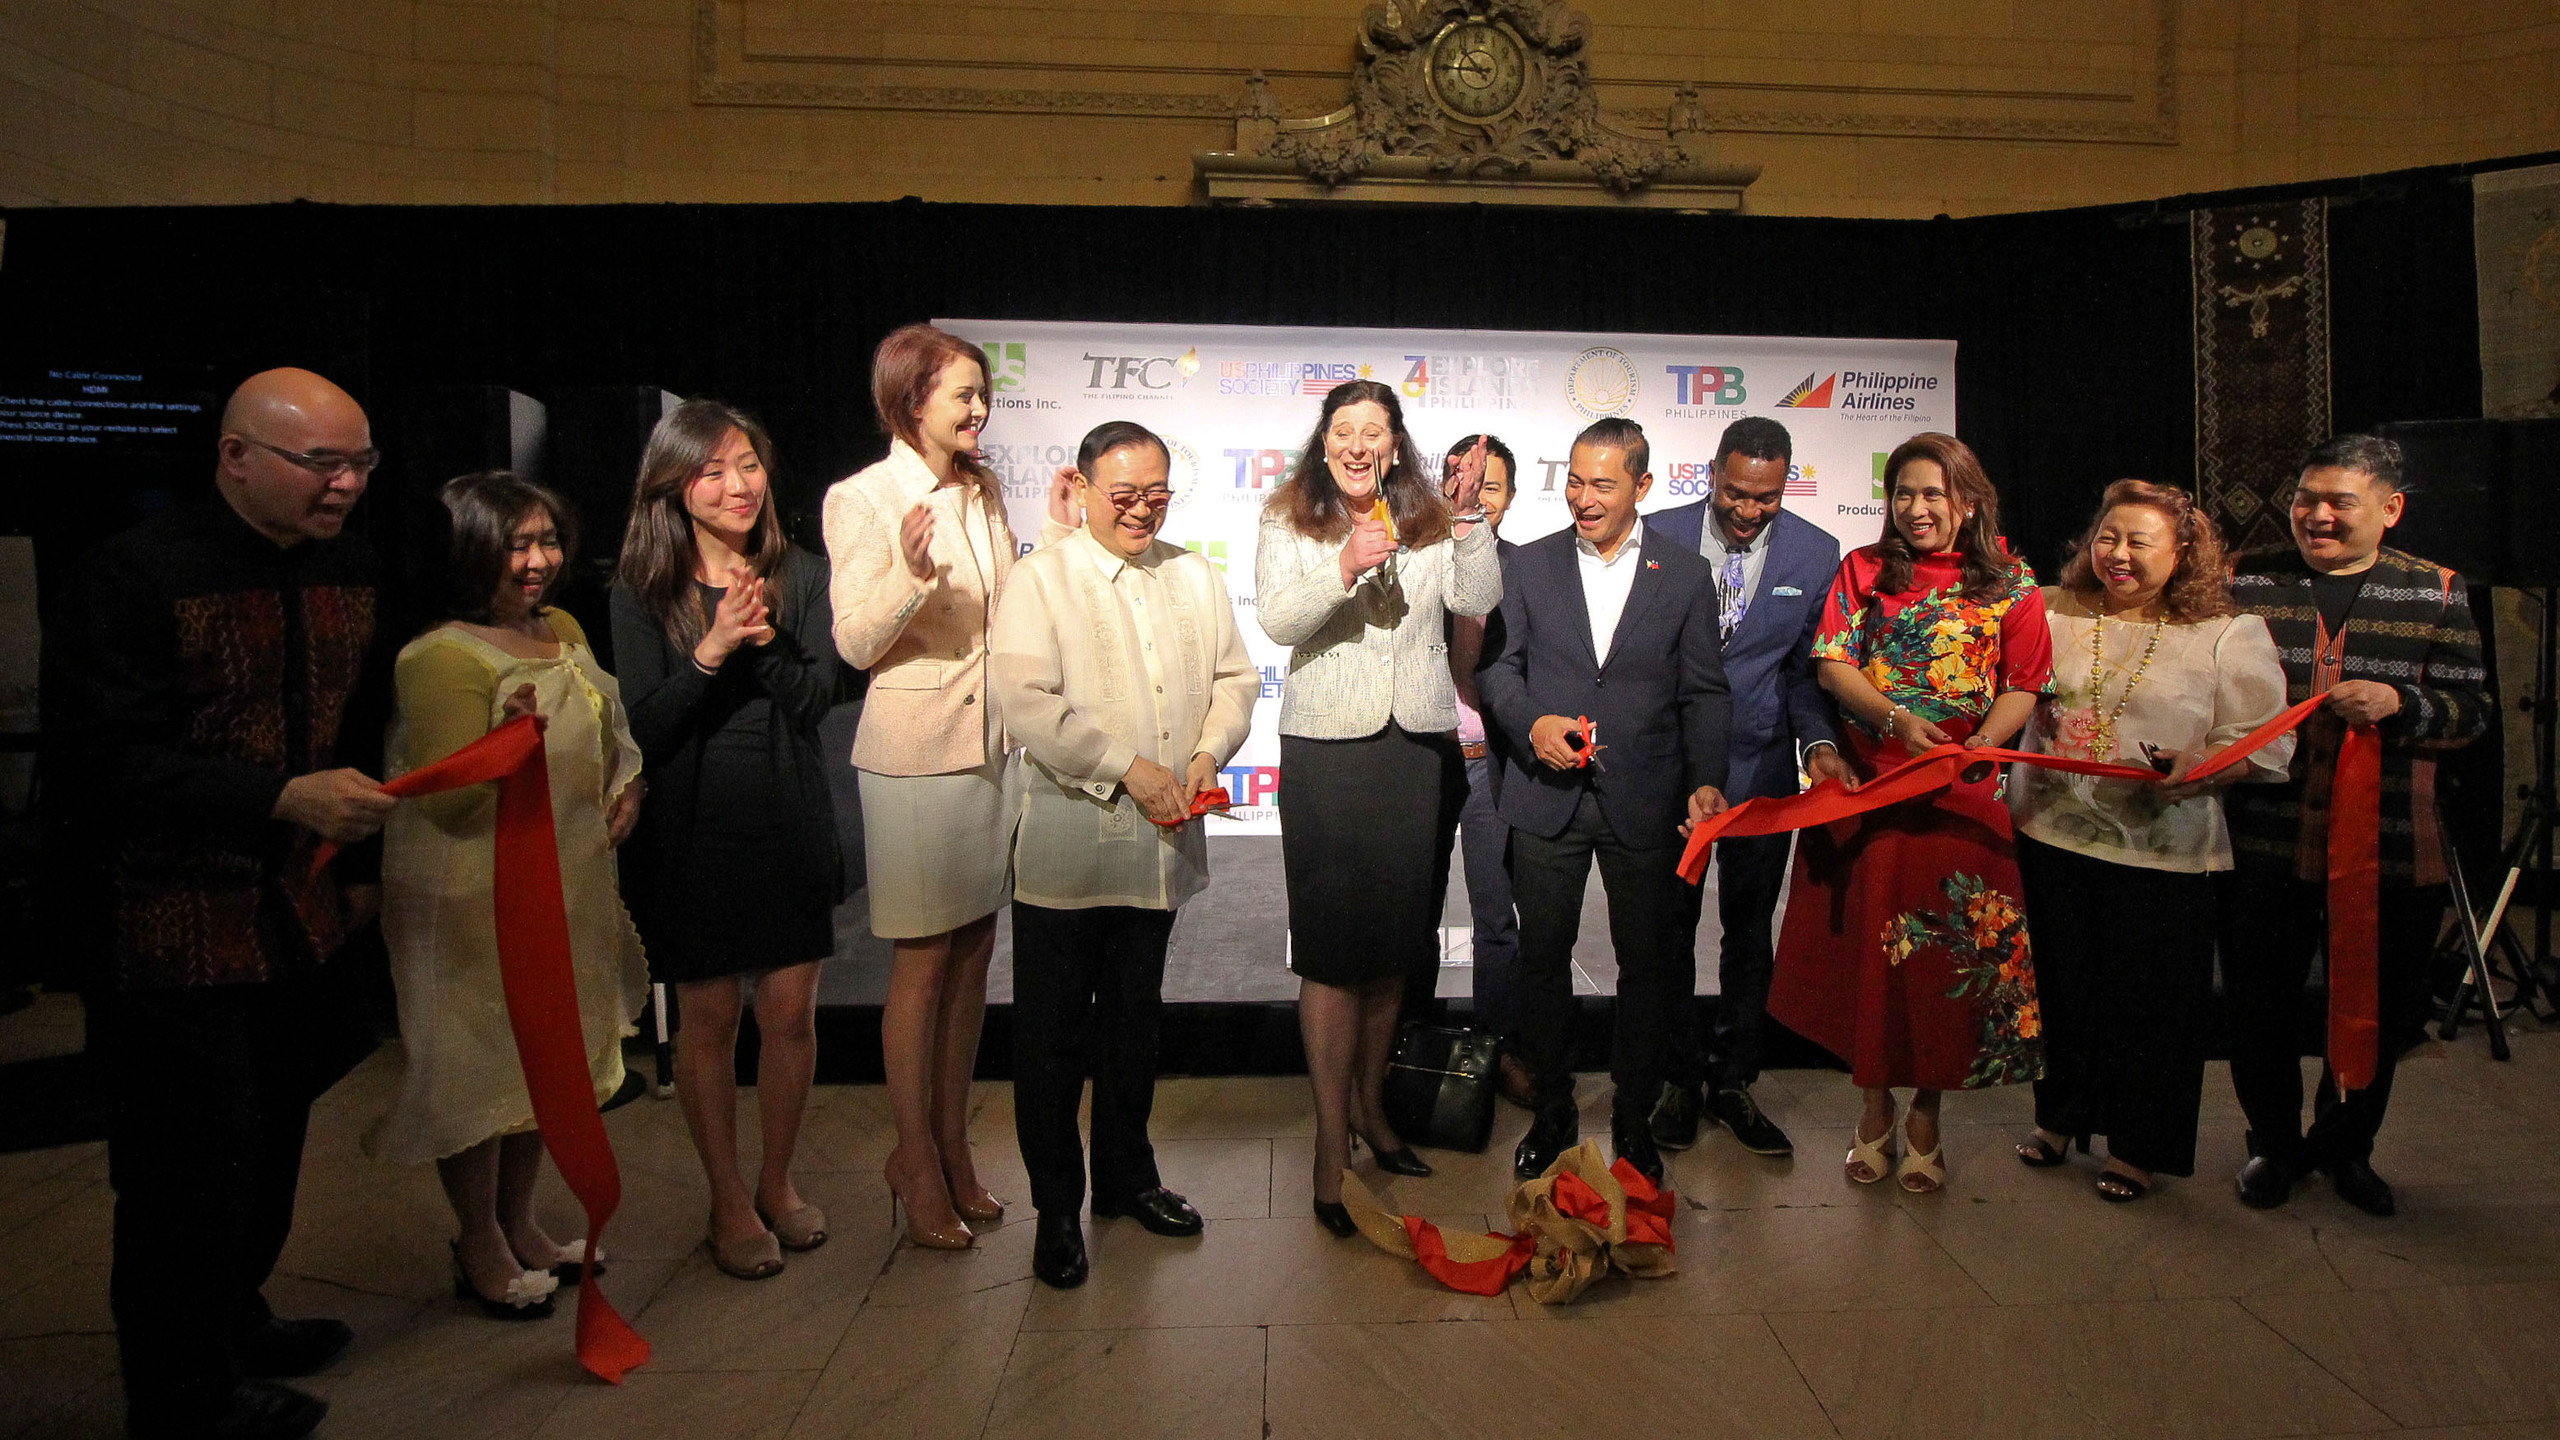 The ceremonial ribbon cutting of the Explore Islands Philippines exhibit at the Vanderbilt Hall of the Grand Central Terminal, New York on May 9, 2018.